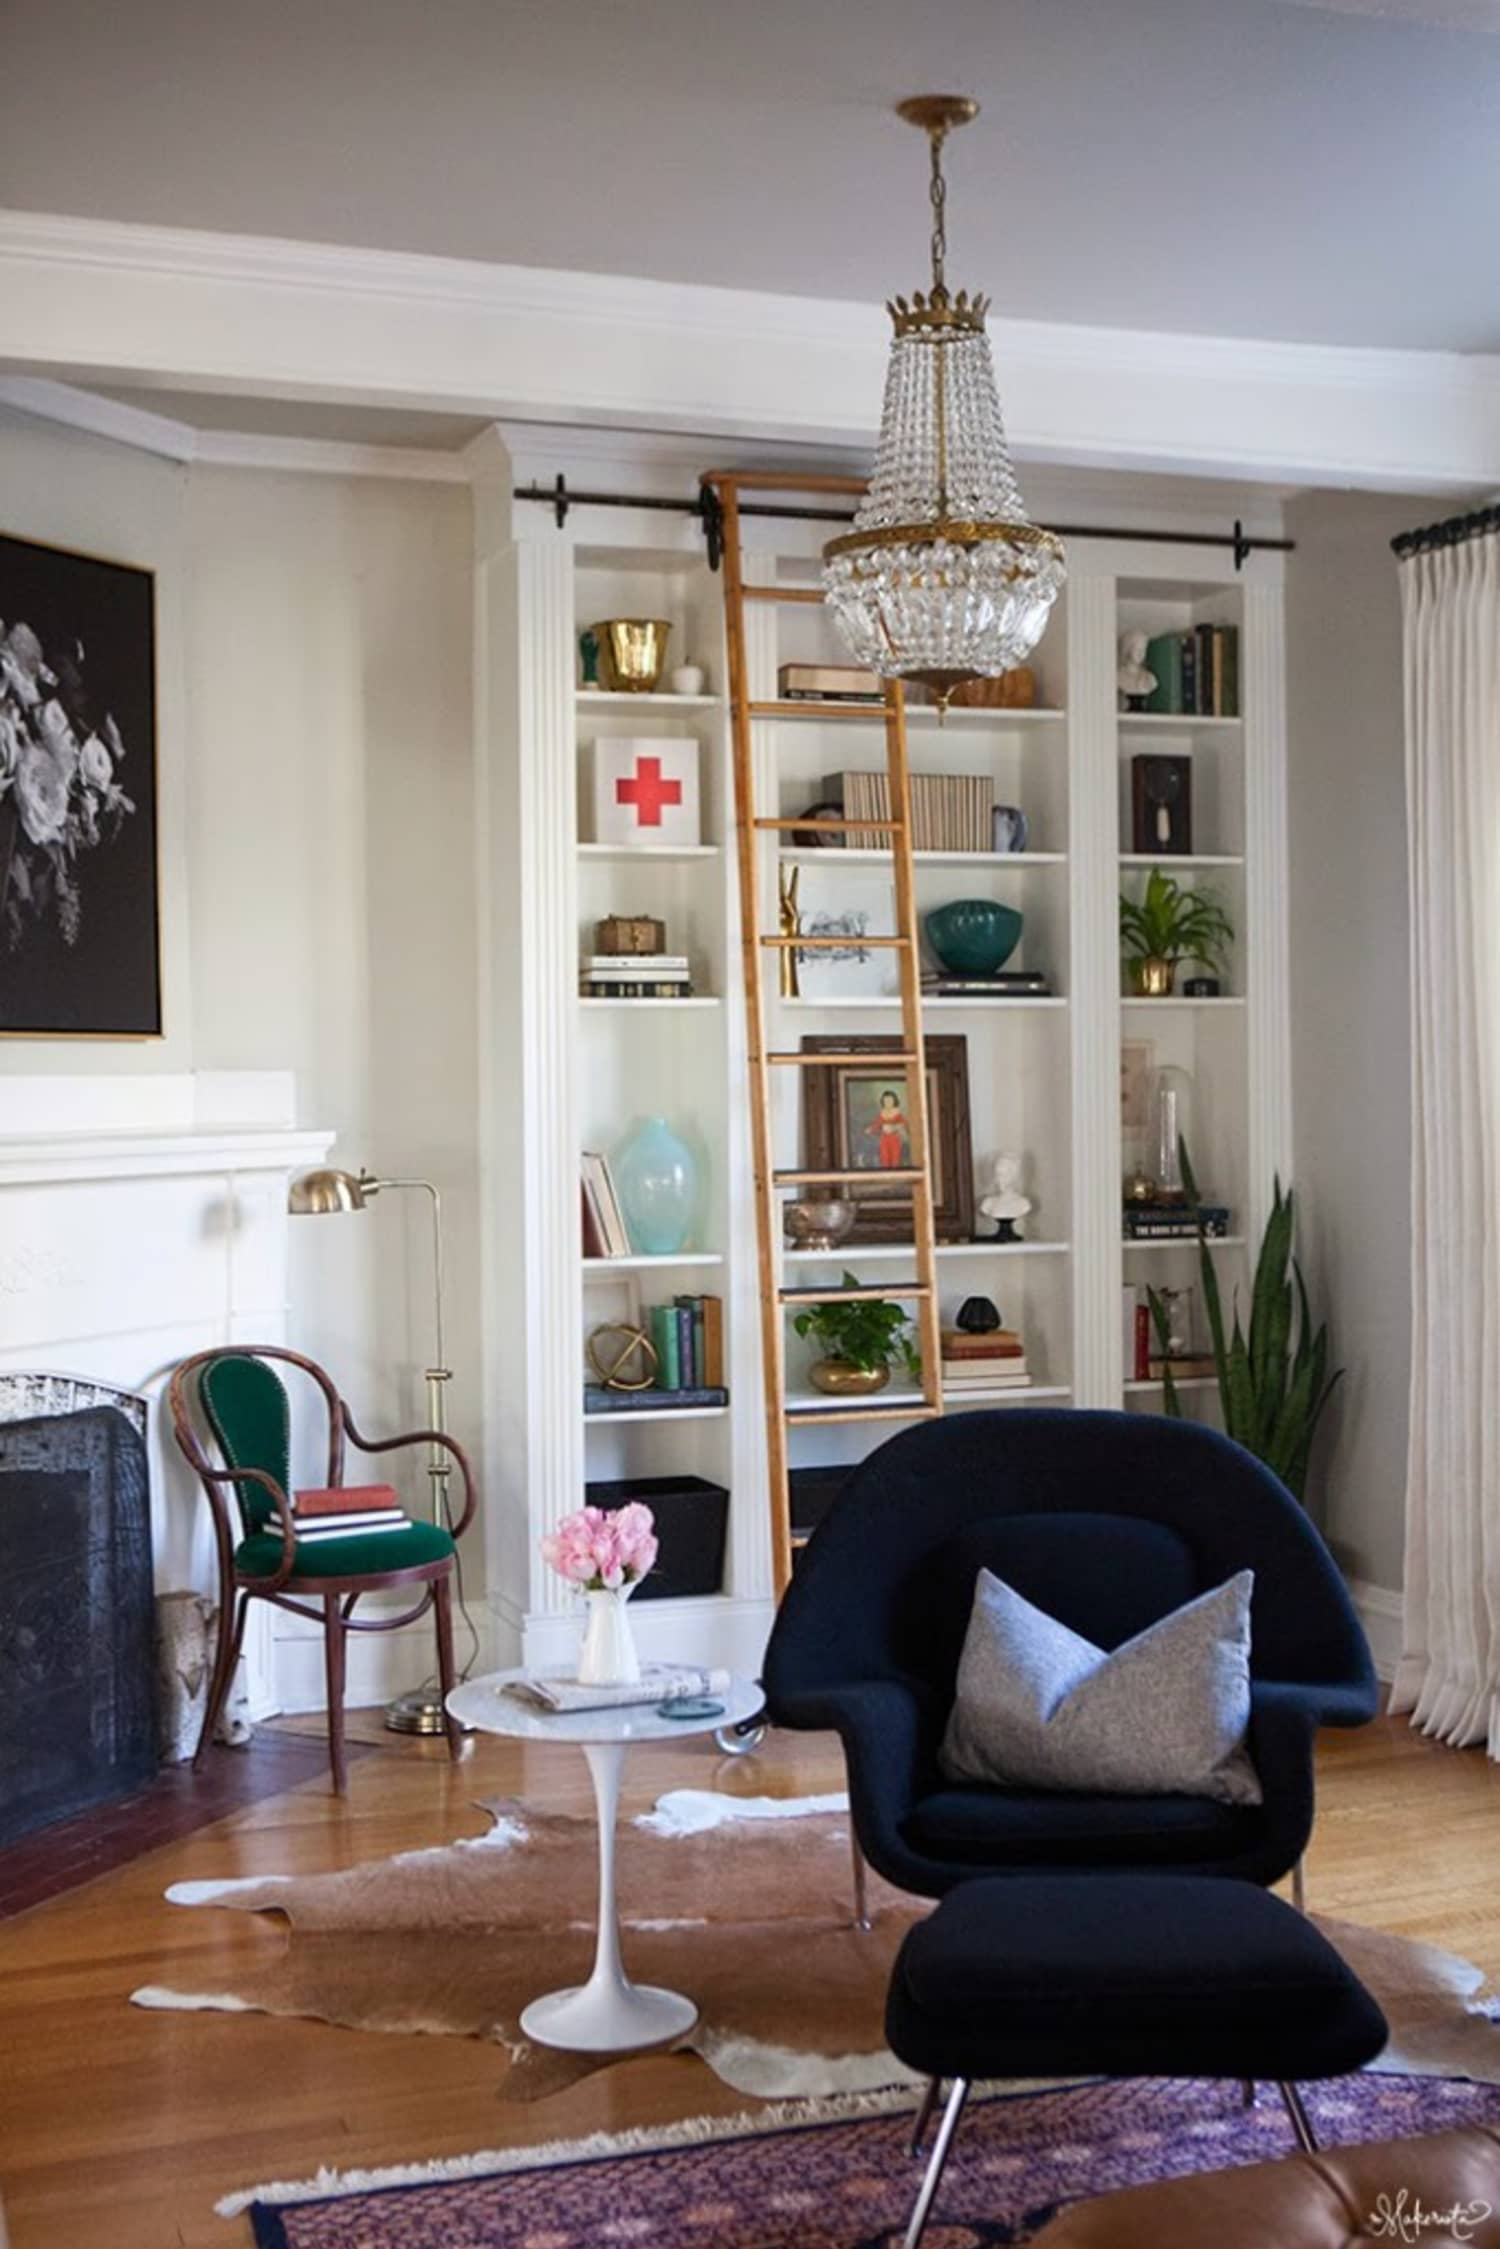 Diy Built In Bookshelves On A Budget Apartment Therapy